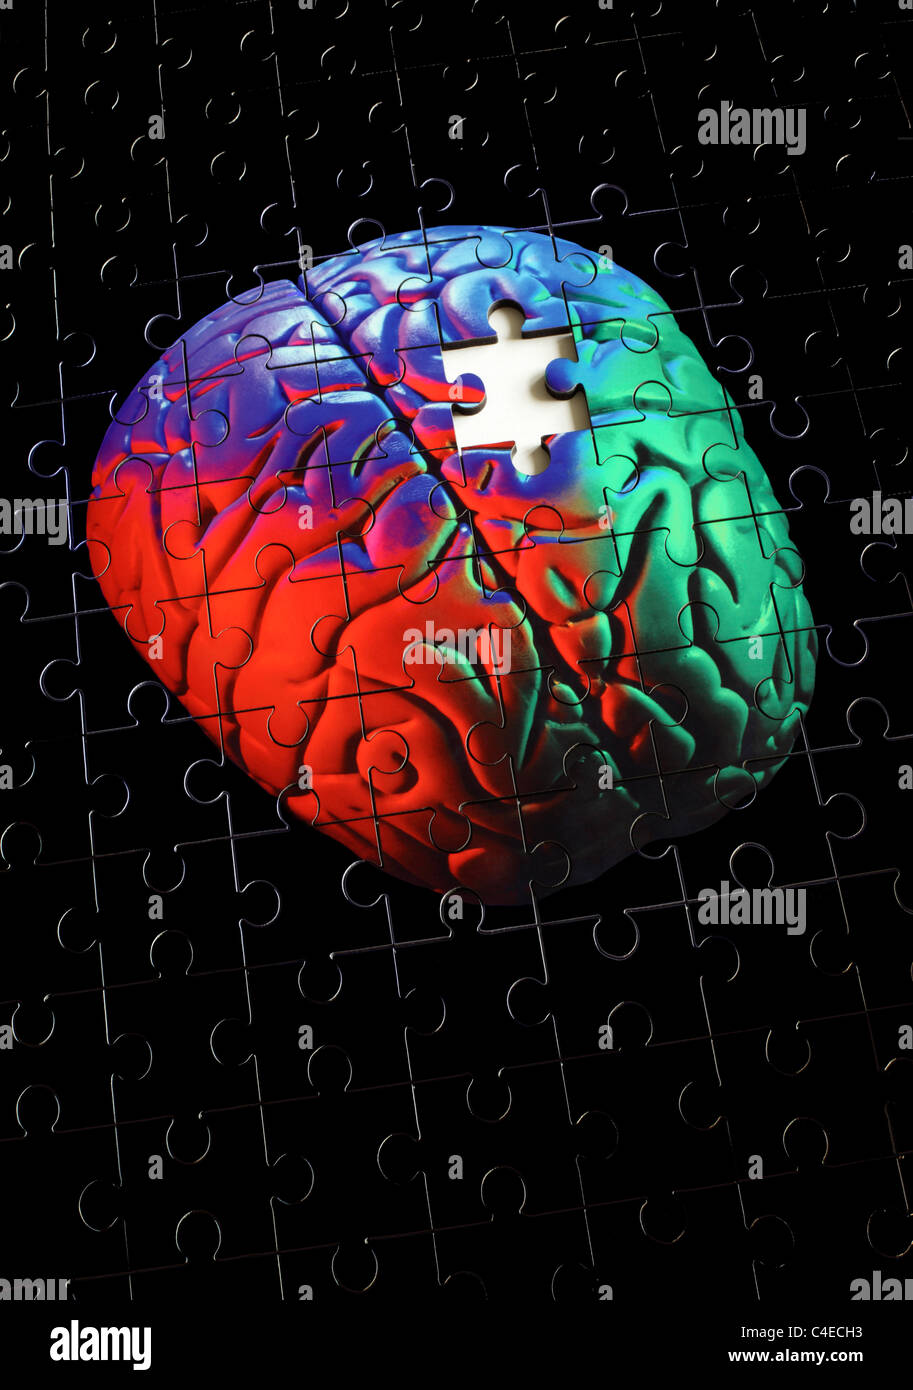 Photo of a jigsaw puzzle of a human (model) brain, with a jigsaw puzzle piece missing. - Stock Image